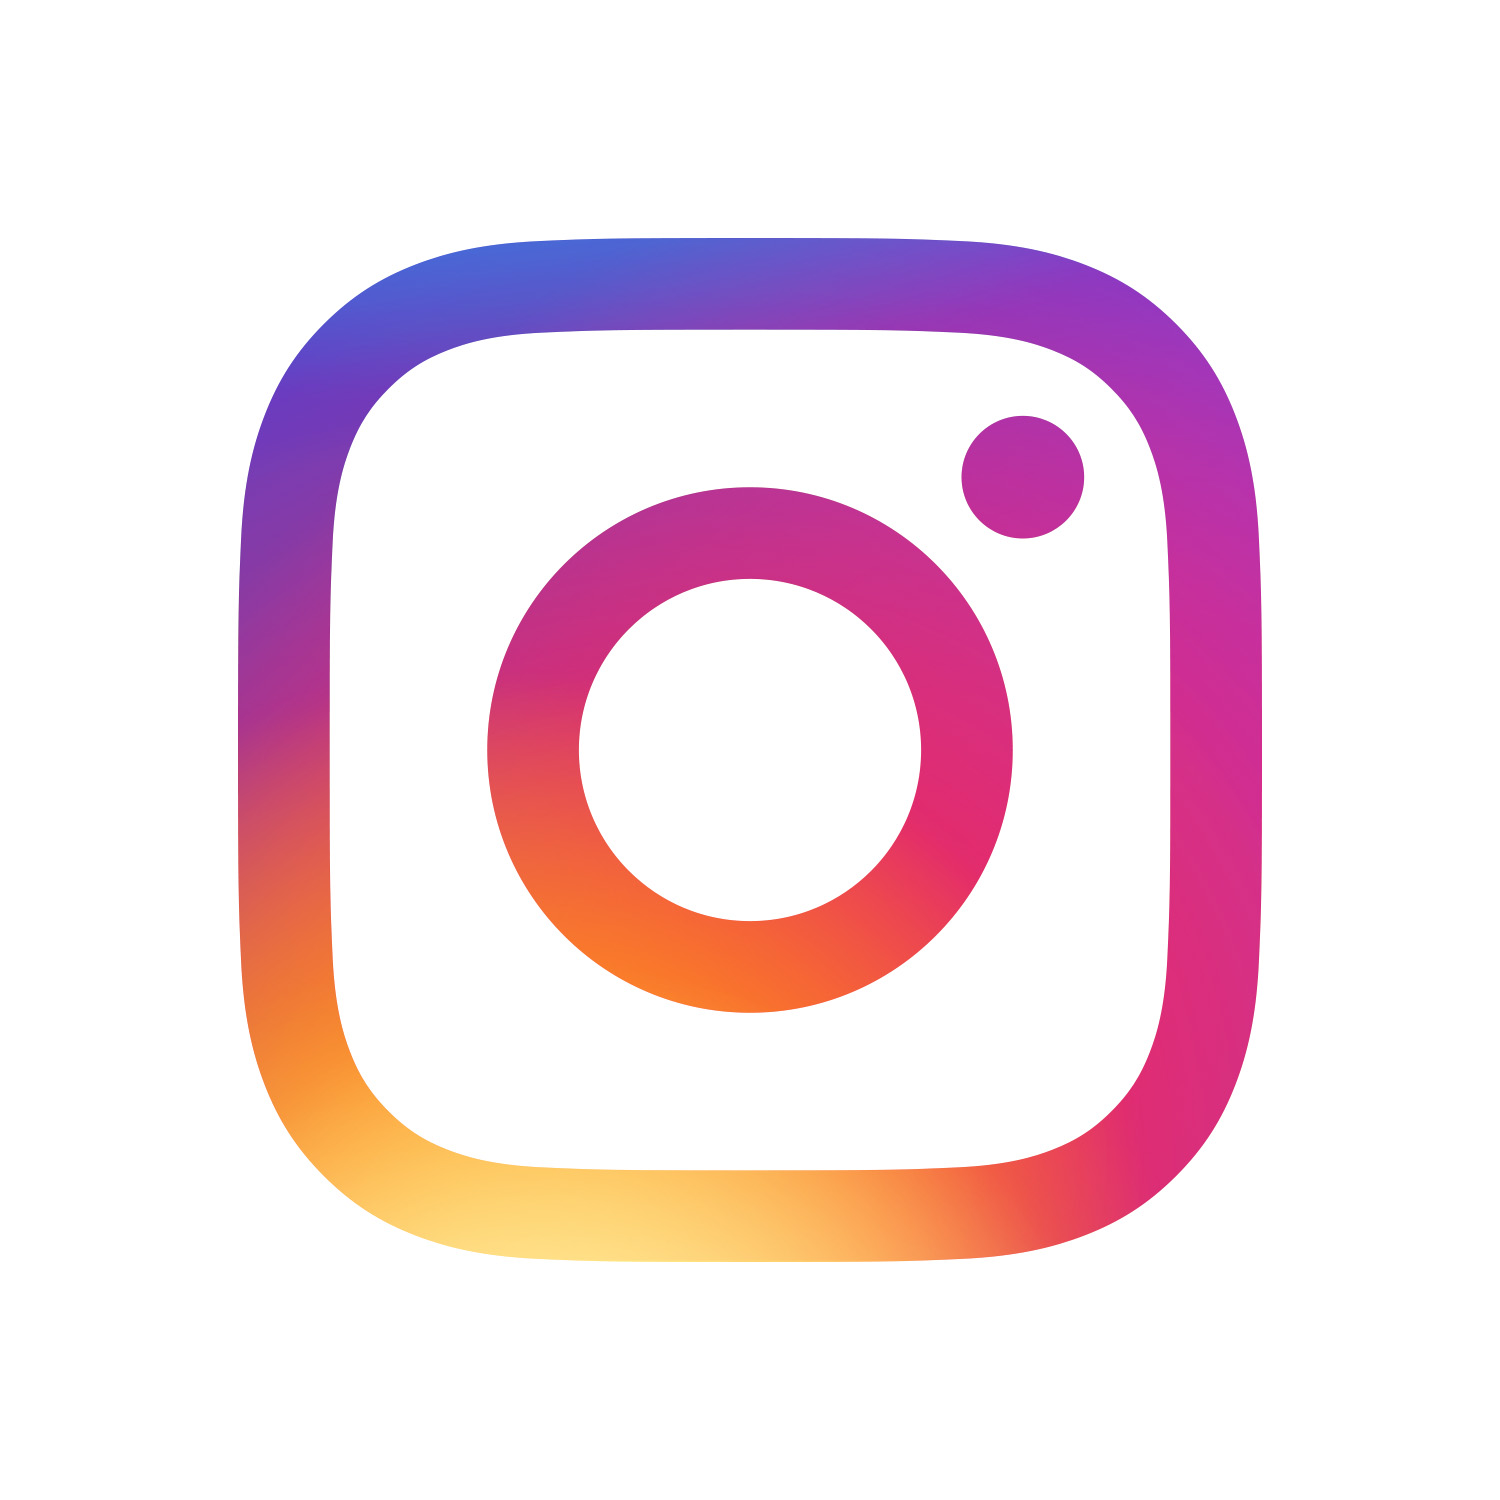 Unser Instagram-Account